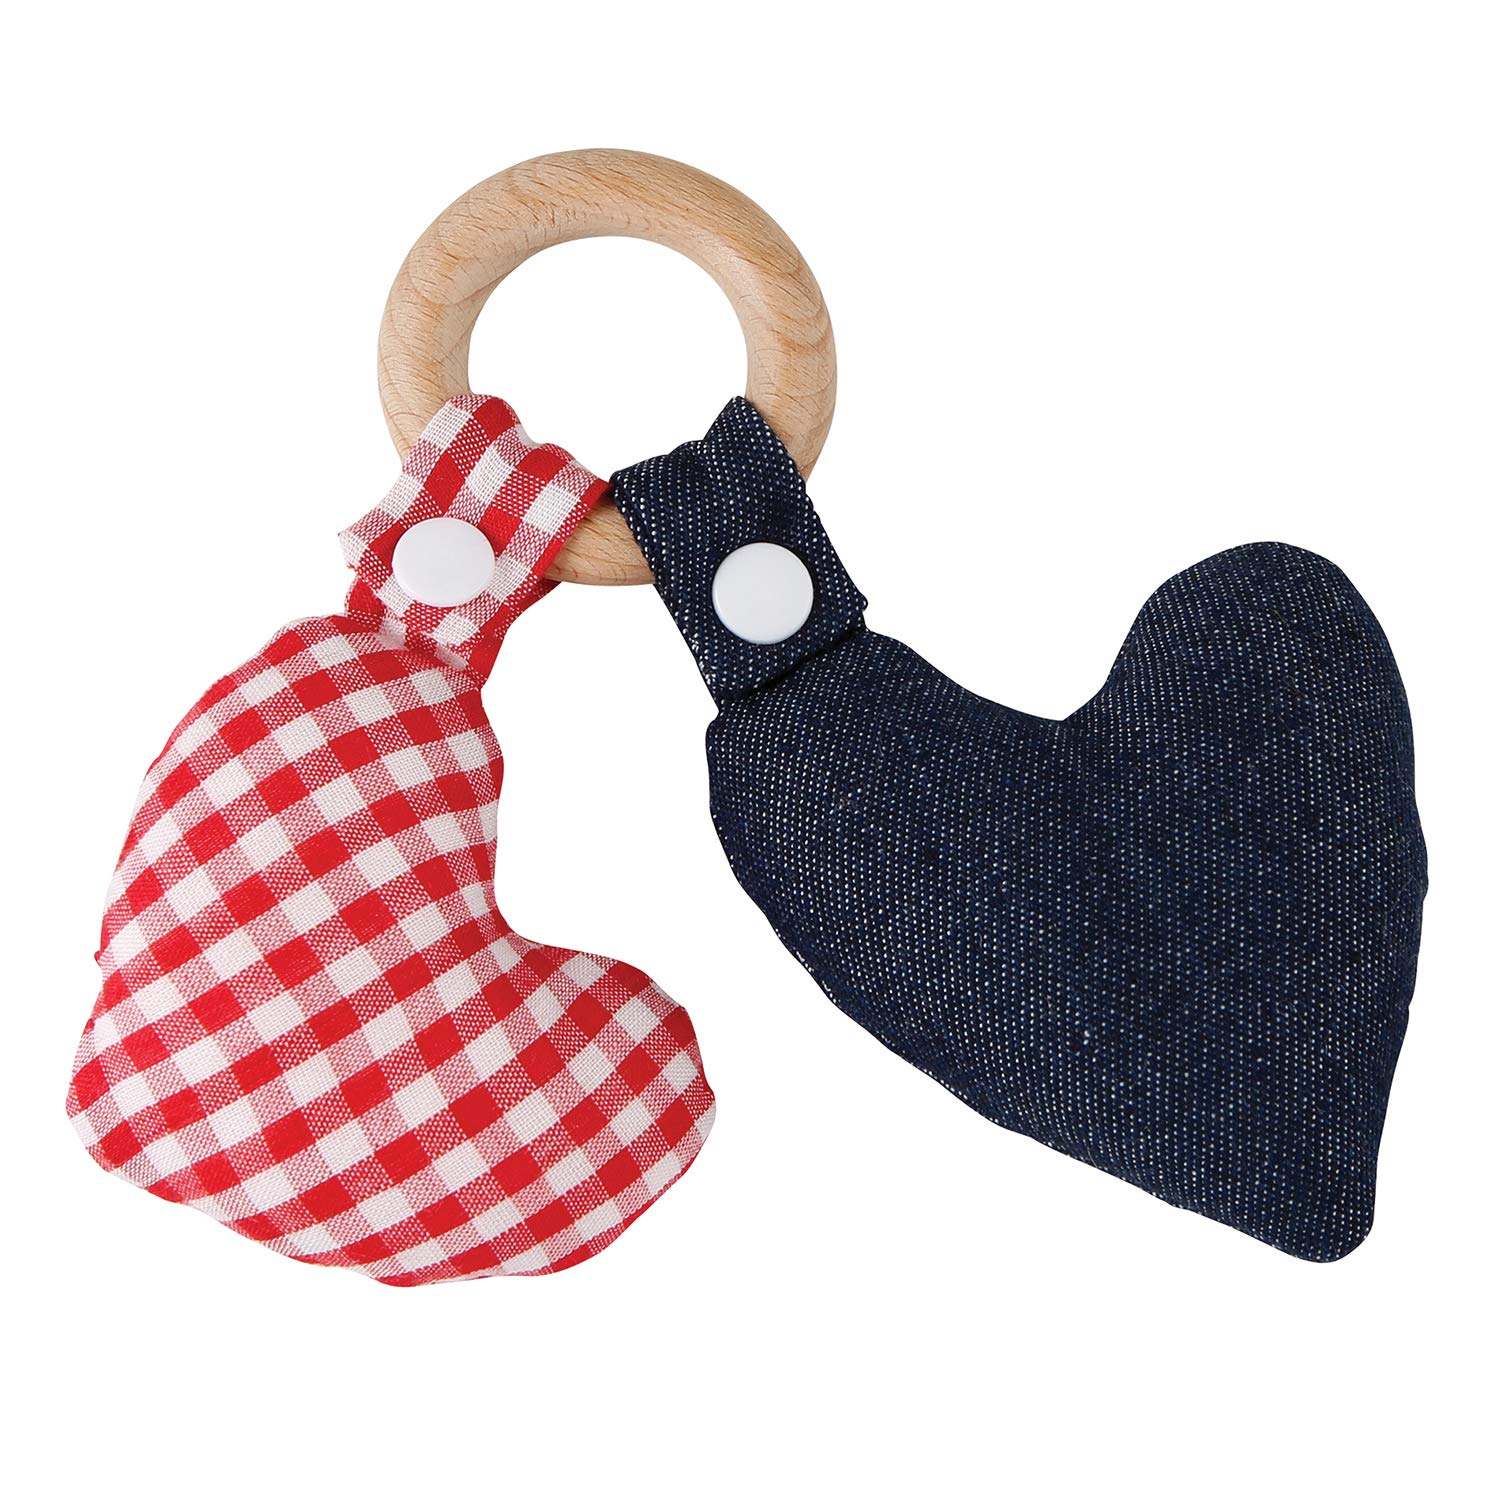 Stephan Baby Natural Beech Wood Hearts Plush Teething Toy